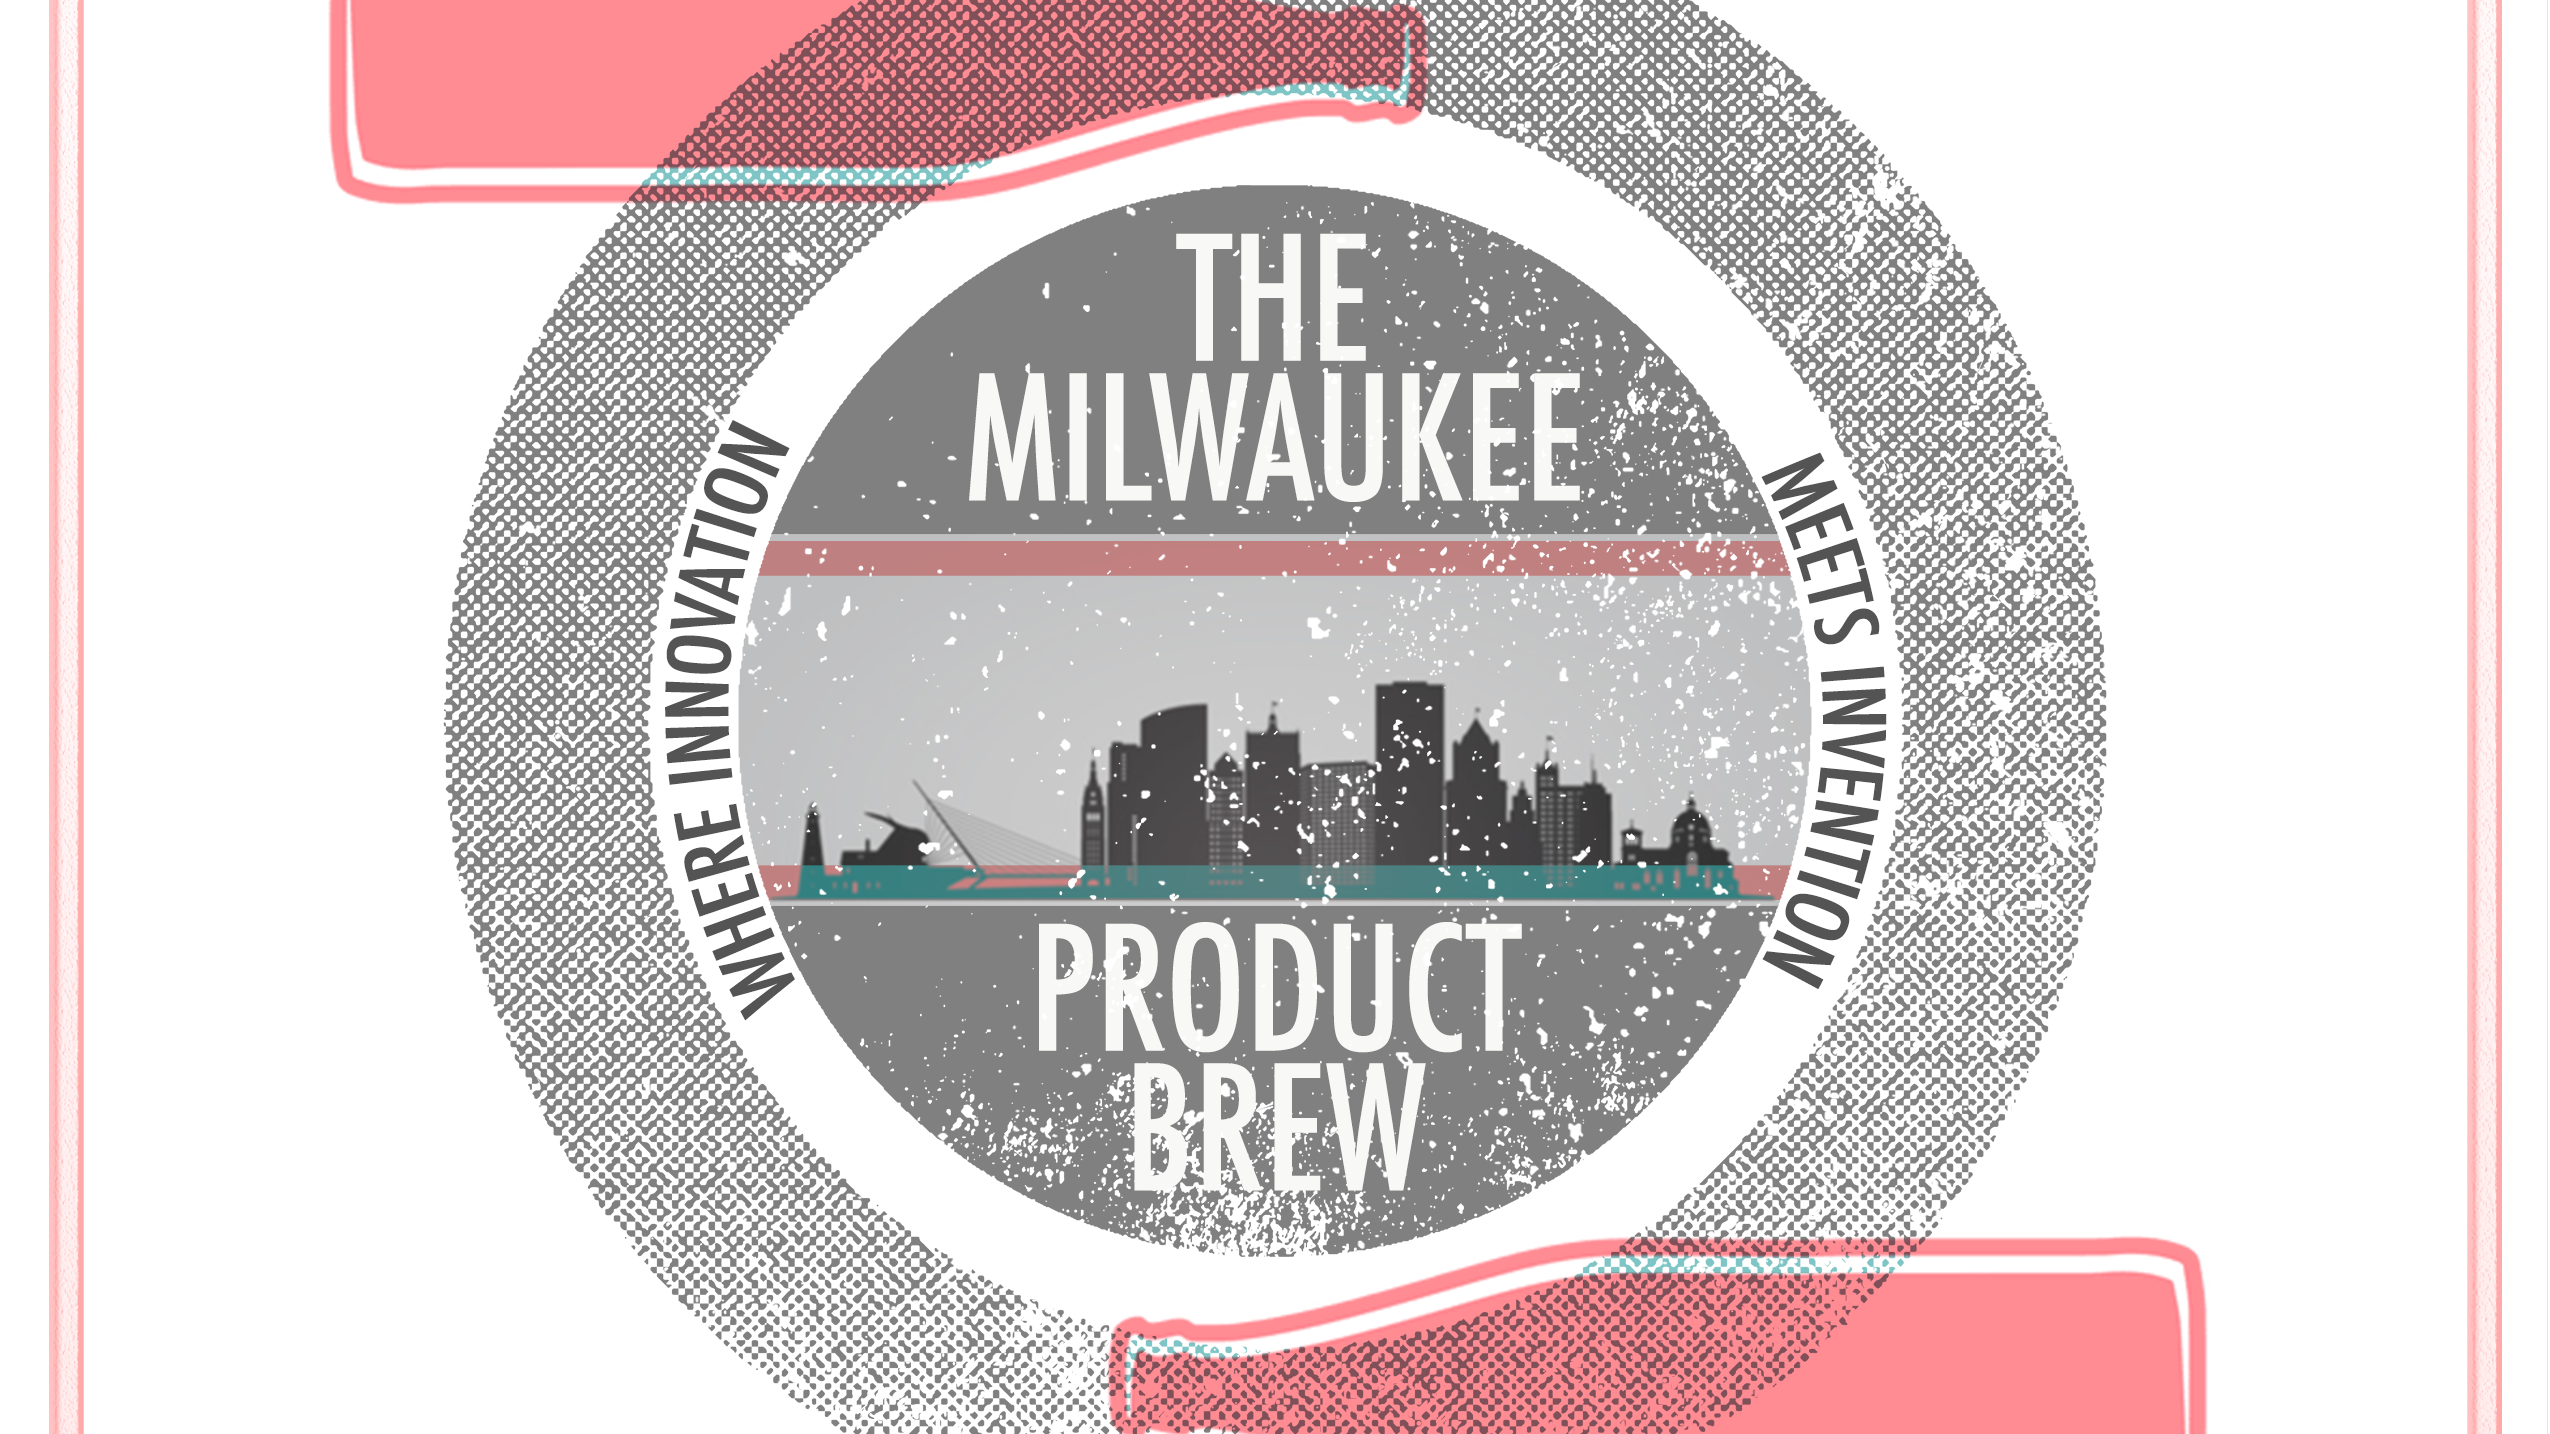 The Milwaukee Product Brew